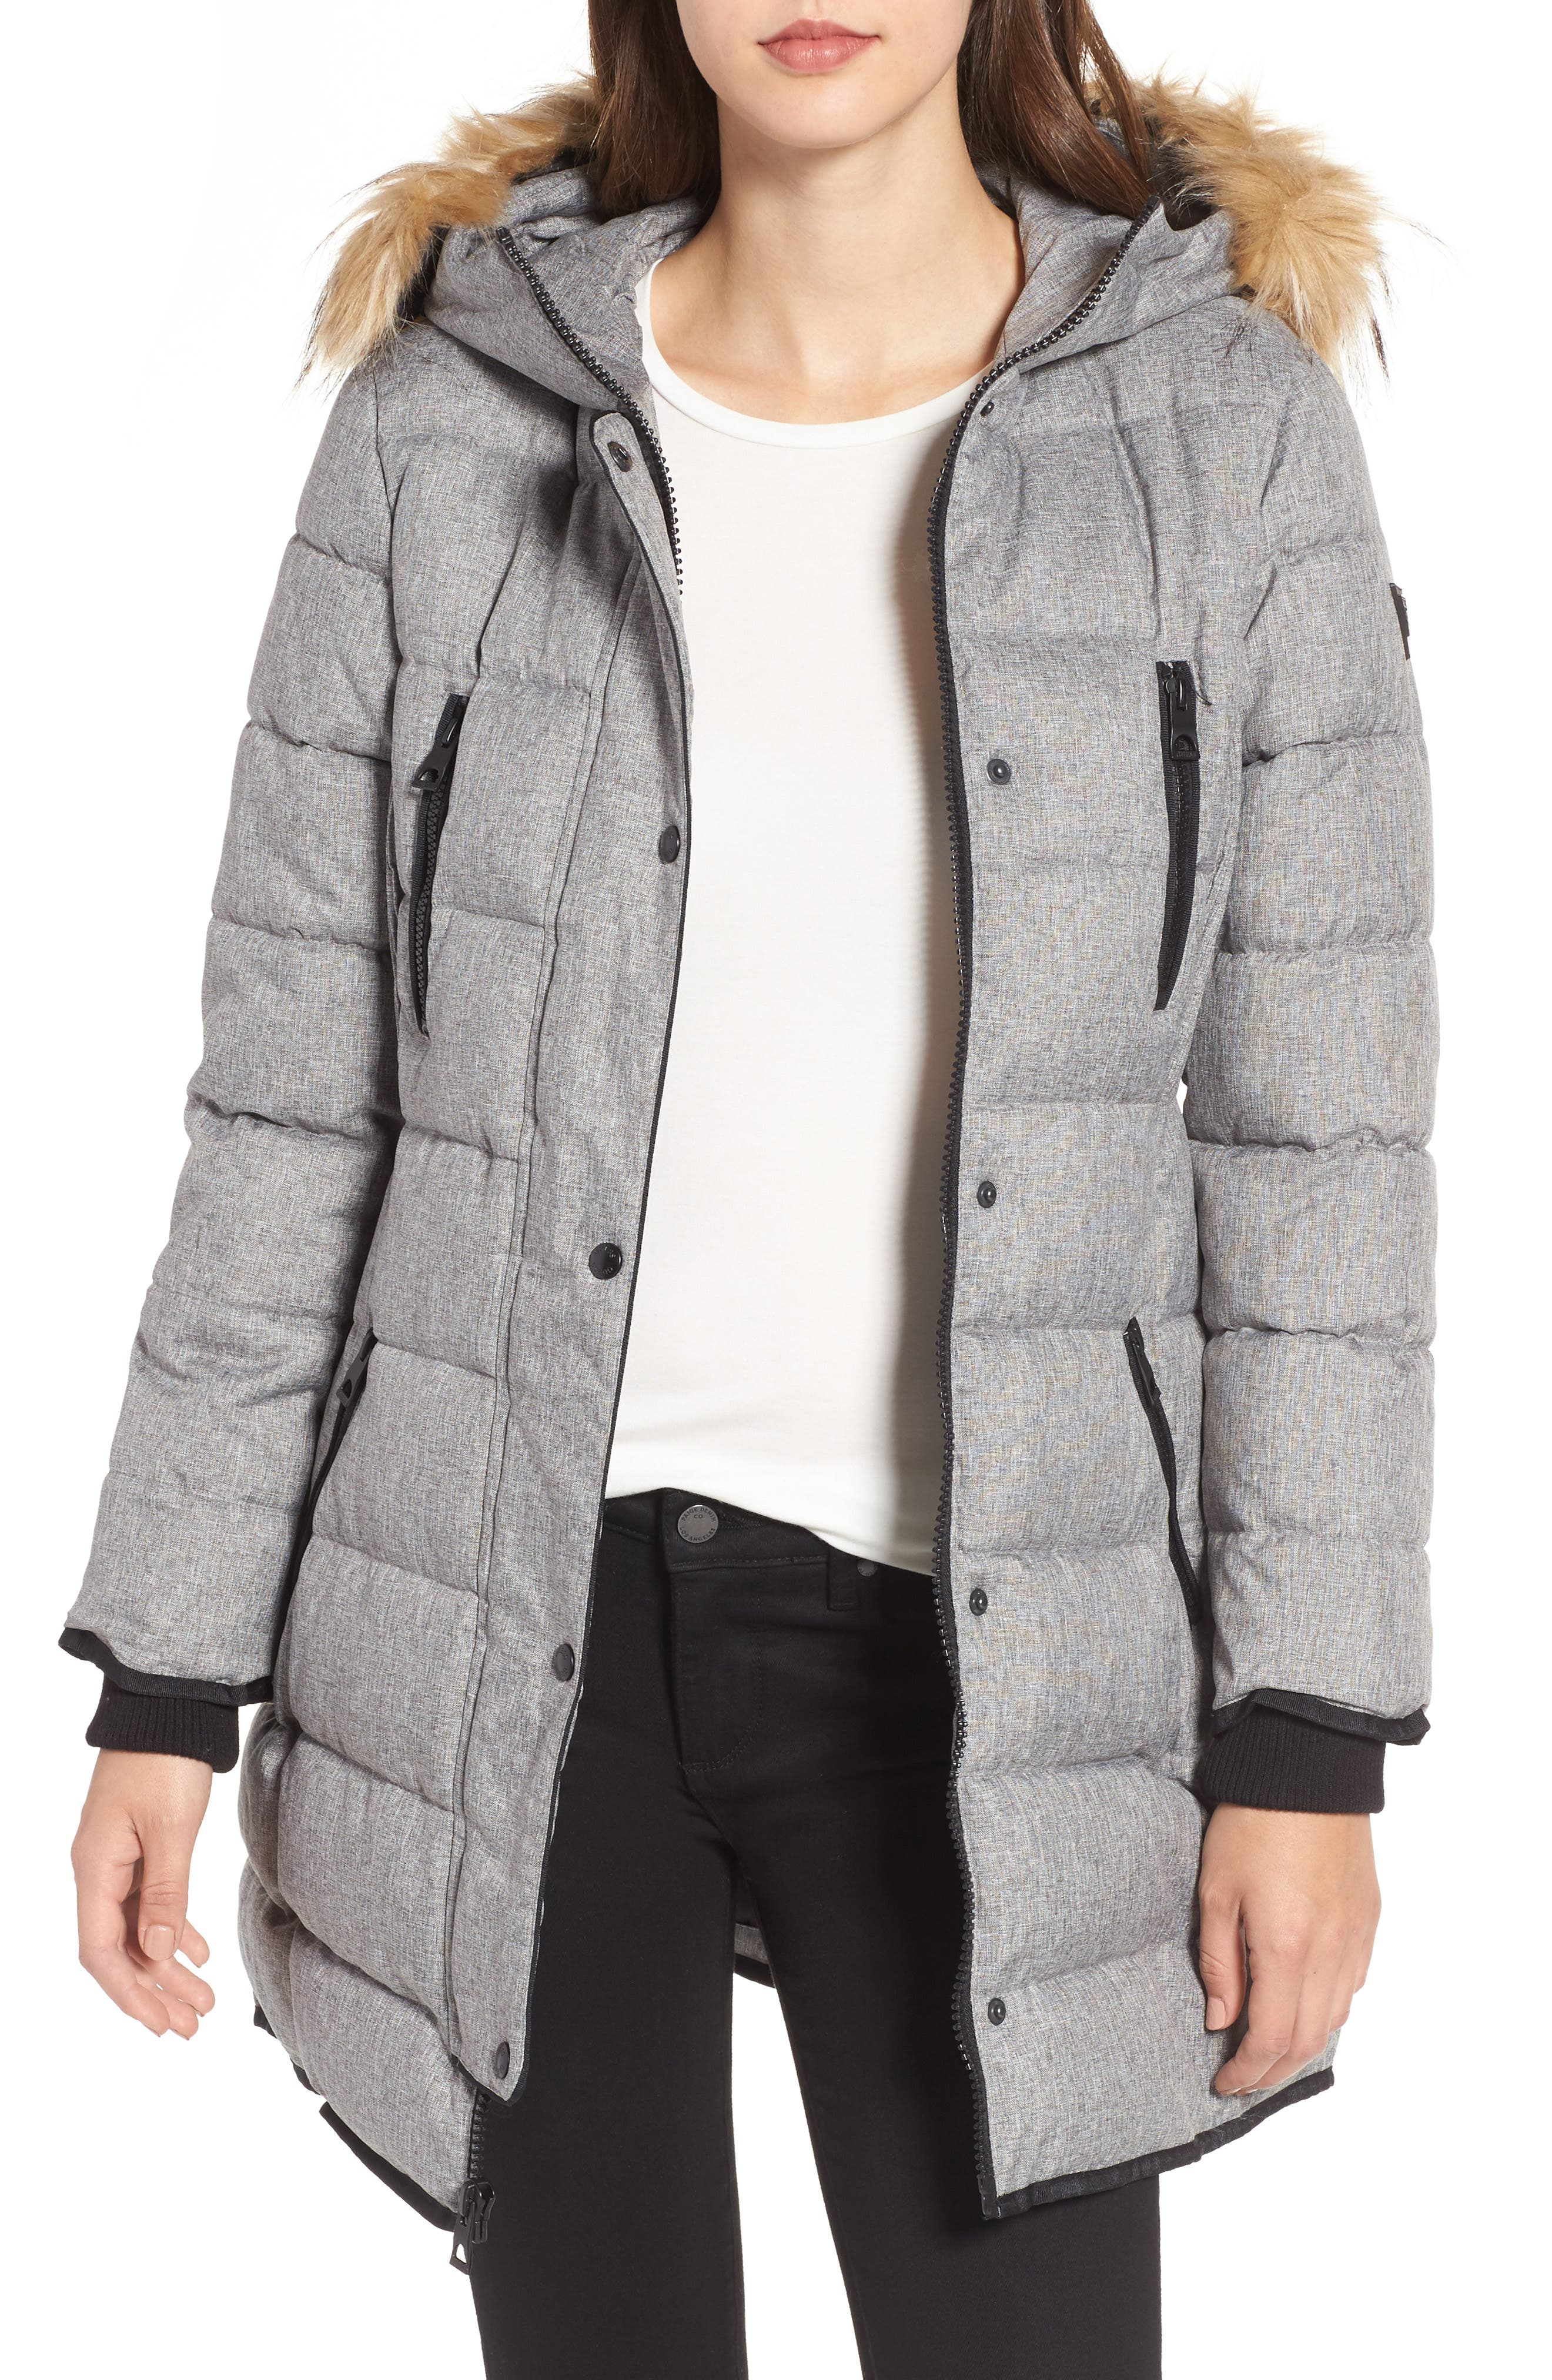 Alternate Image 1 Selected - GUESS Hooded Jacket with Faux Fur Trim